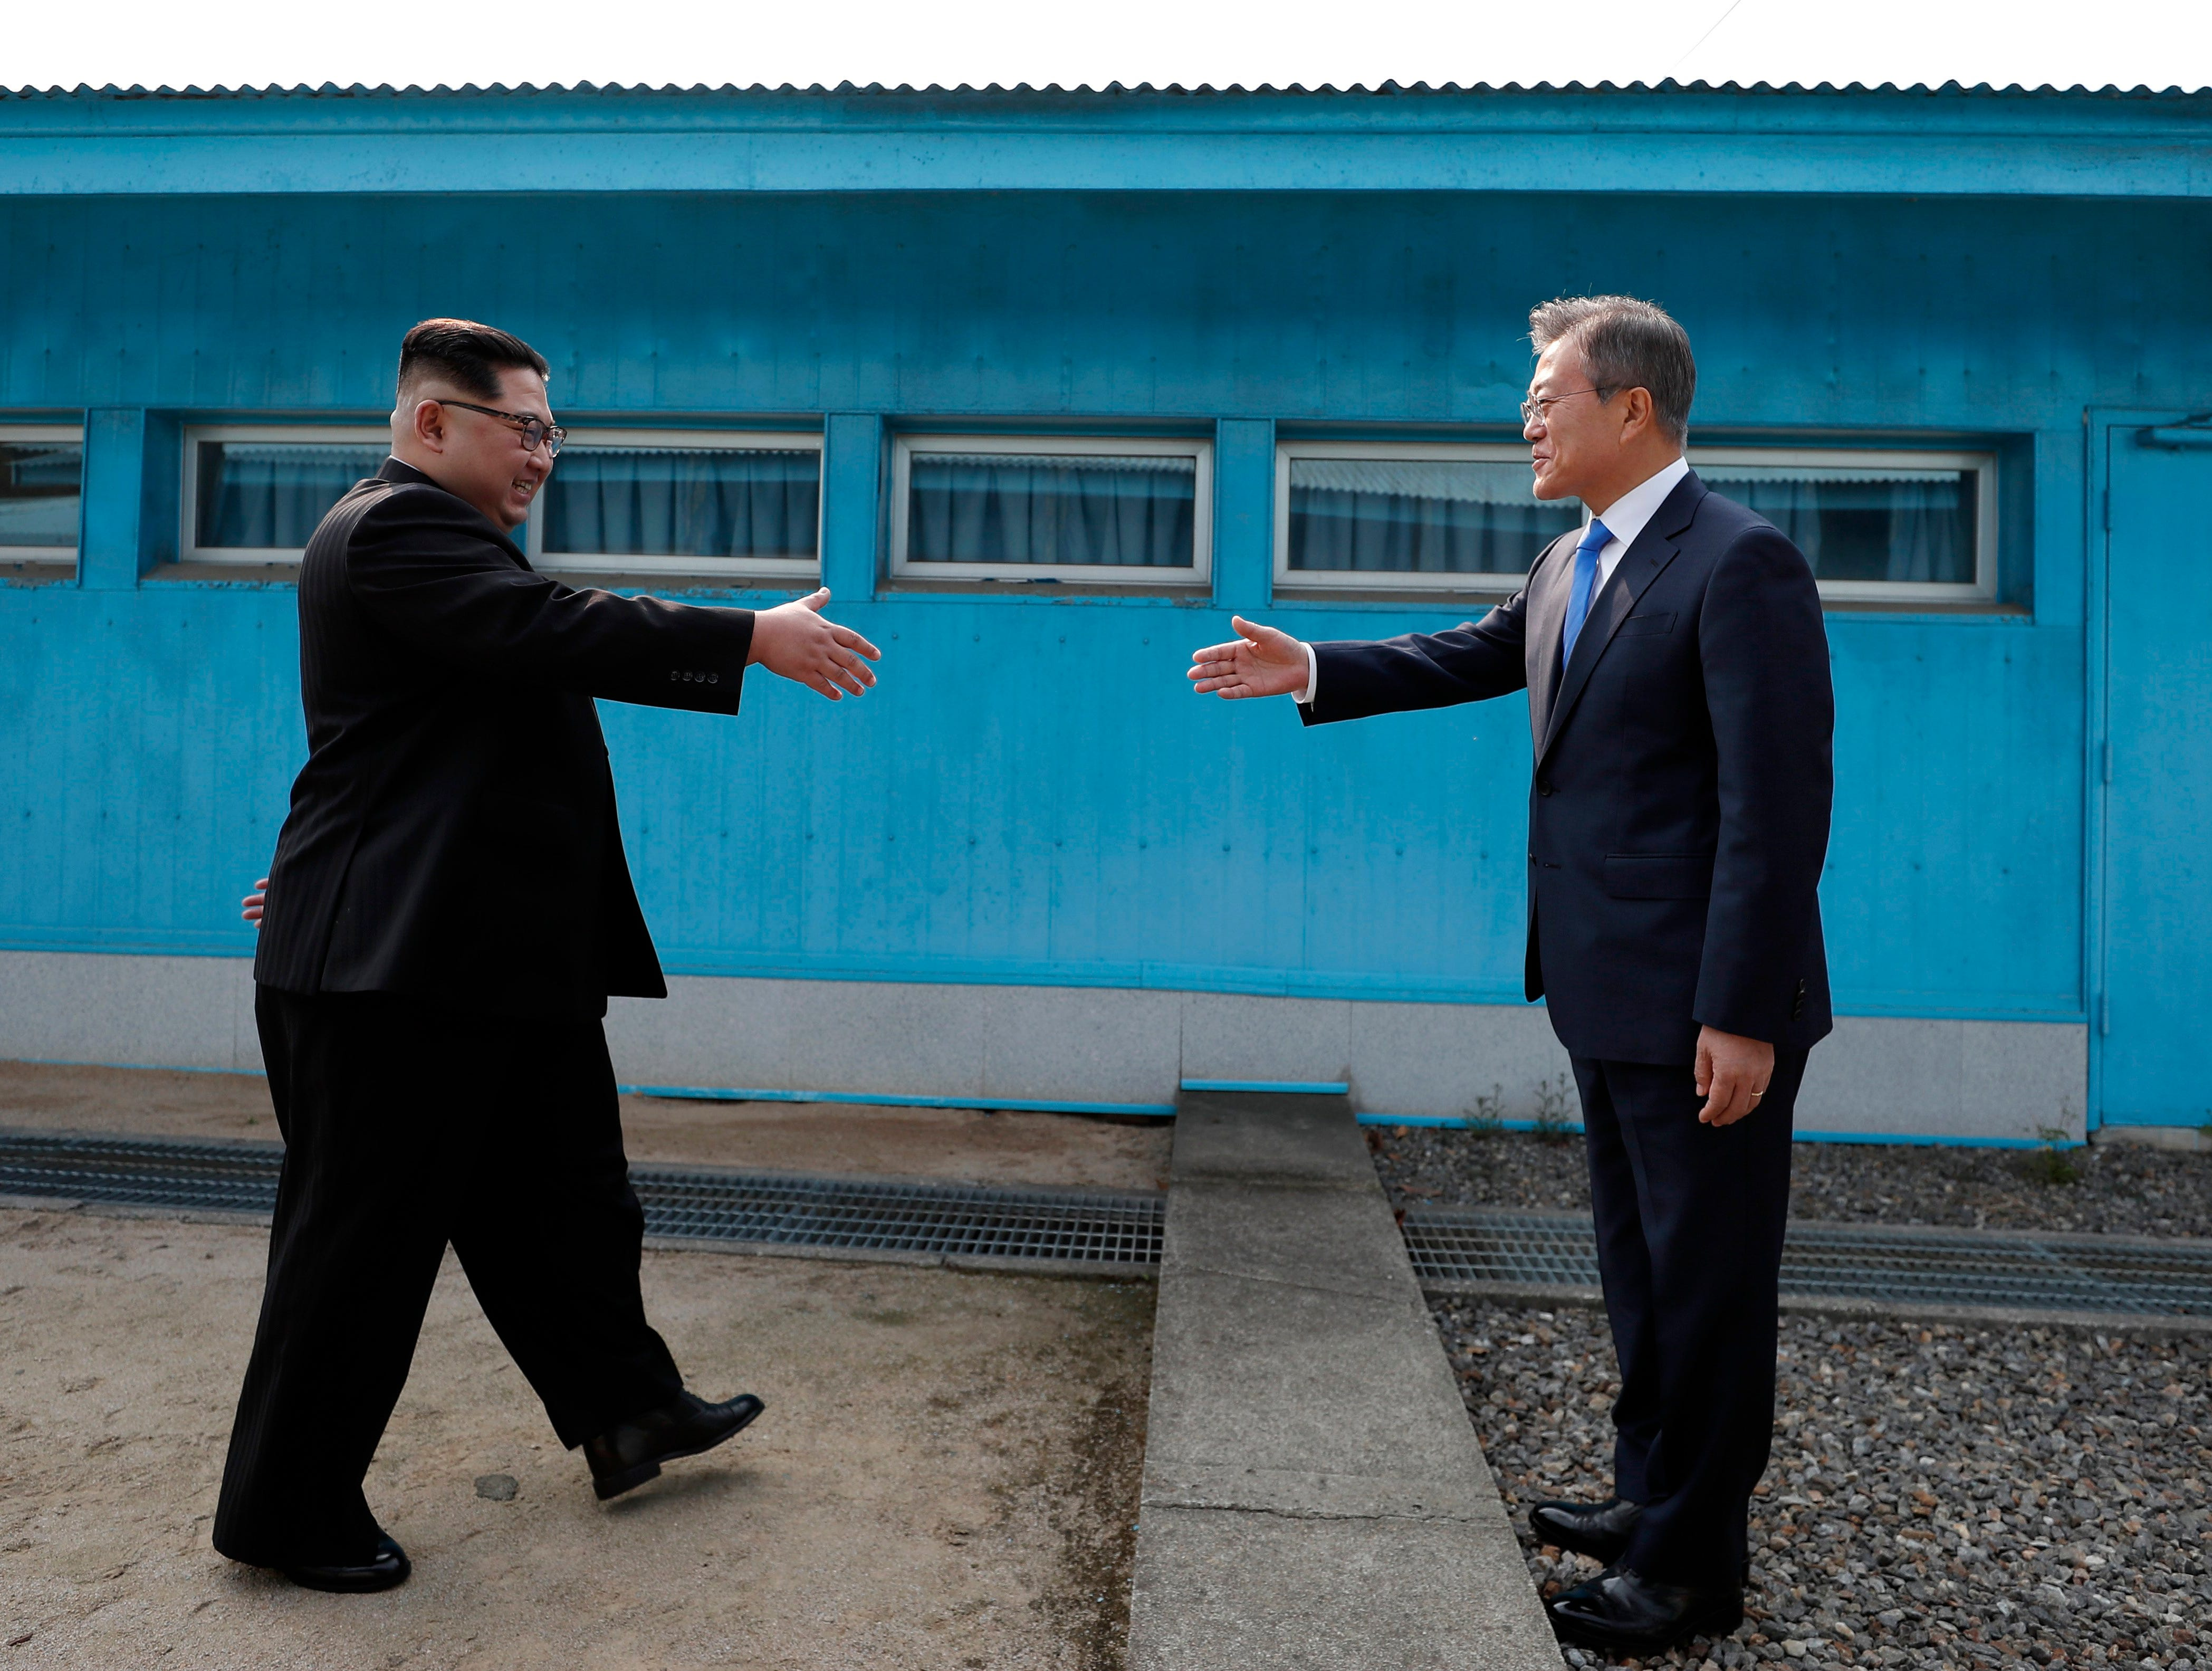 April 27, 2018: North Korean leader Kim Jong-un (L) shakes hands with South Korean President Moon Jae-in (R) between the military demarcation line (MDL), at the Joint Security Area (JSA) on the Demilitarized Zone (DMZ) in the border village of Panmunjom in Paju, South Korea. South Korean President Moon Jae-in and North Korean leader Kim Jong-un are meeting at the Peace House in Panmunjom for an inter-Korean summit. The event marks the first time a North Korean leader has crossed the border into South Korea since the end of hostilities during the Korean War.